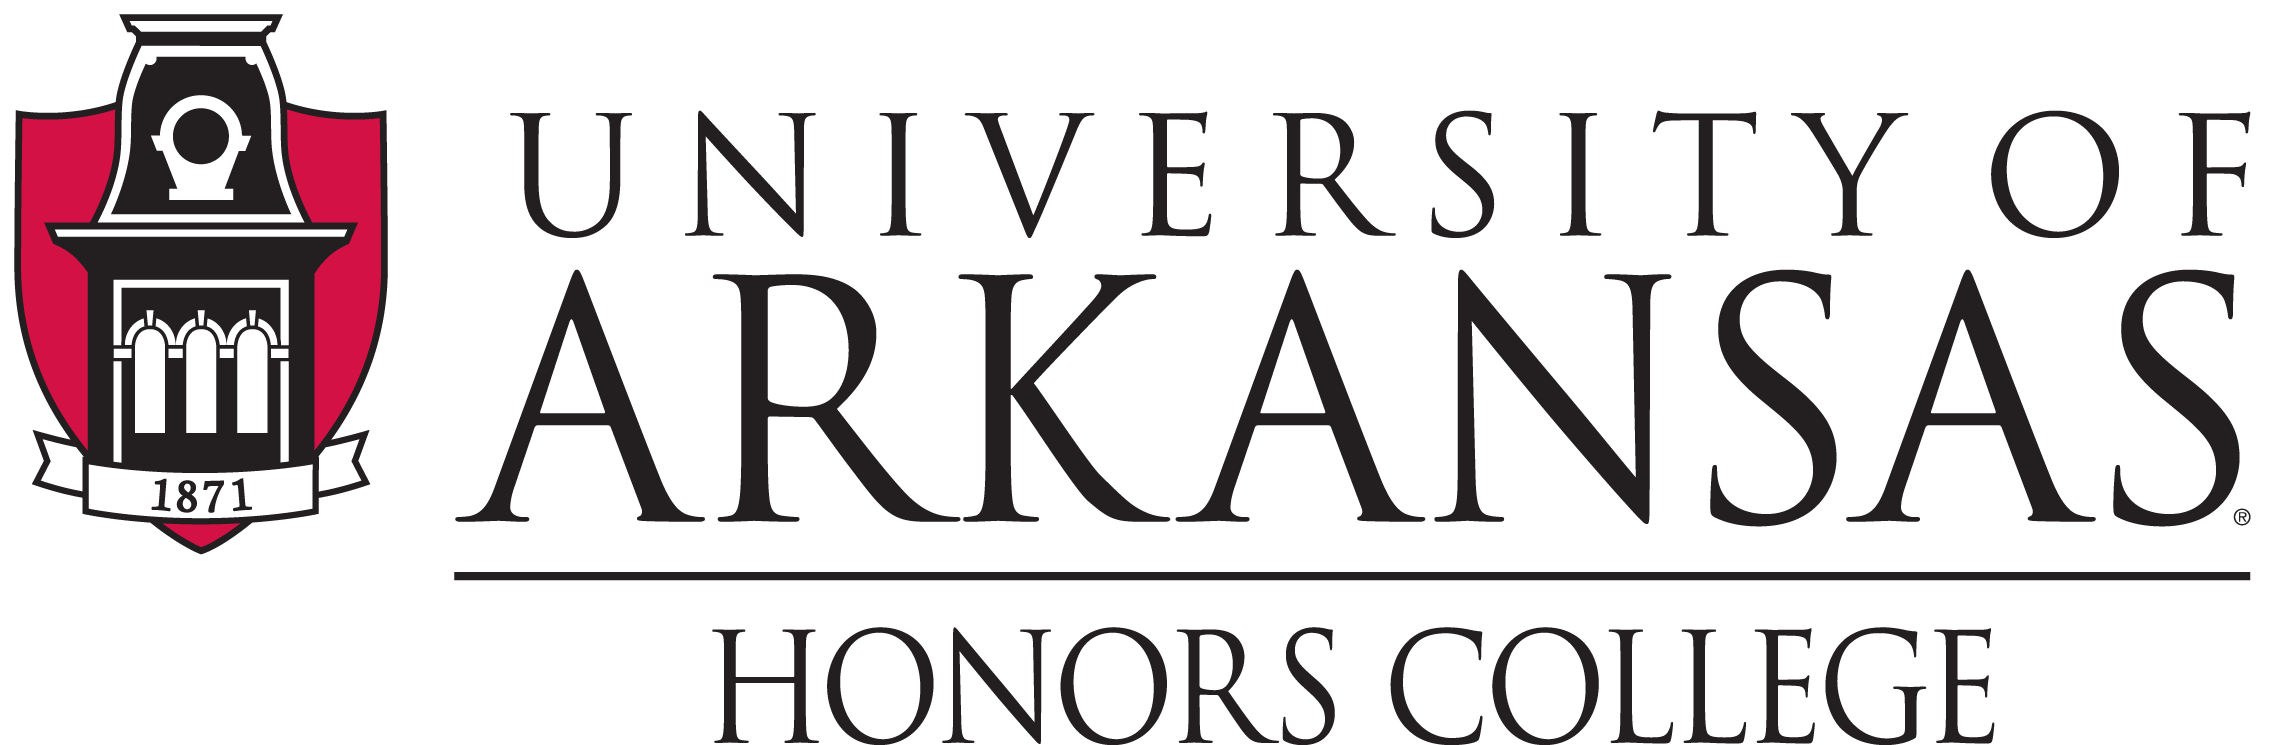 Credit Your Grant | Honors College | University of Arkansas